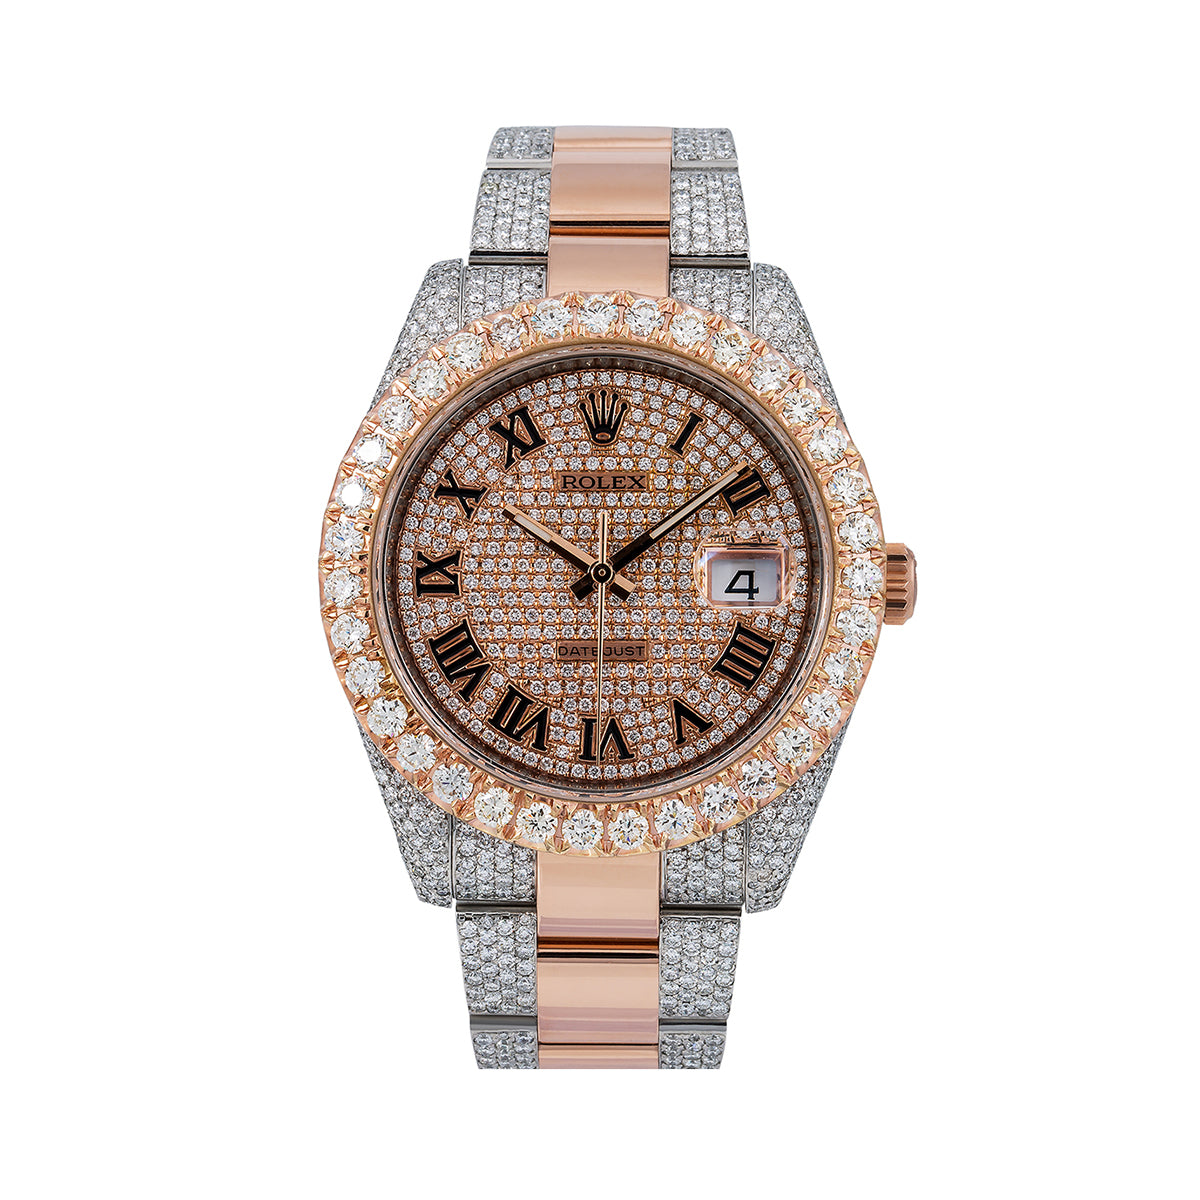 Rolex Datejust Diamond Watch, 126331 41mm, Champagne Diamond Dial With Two Tone Oyster Bracelet